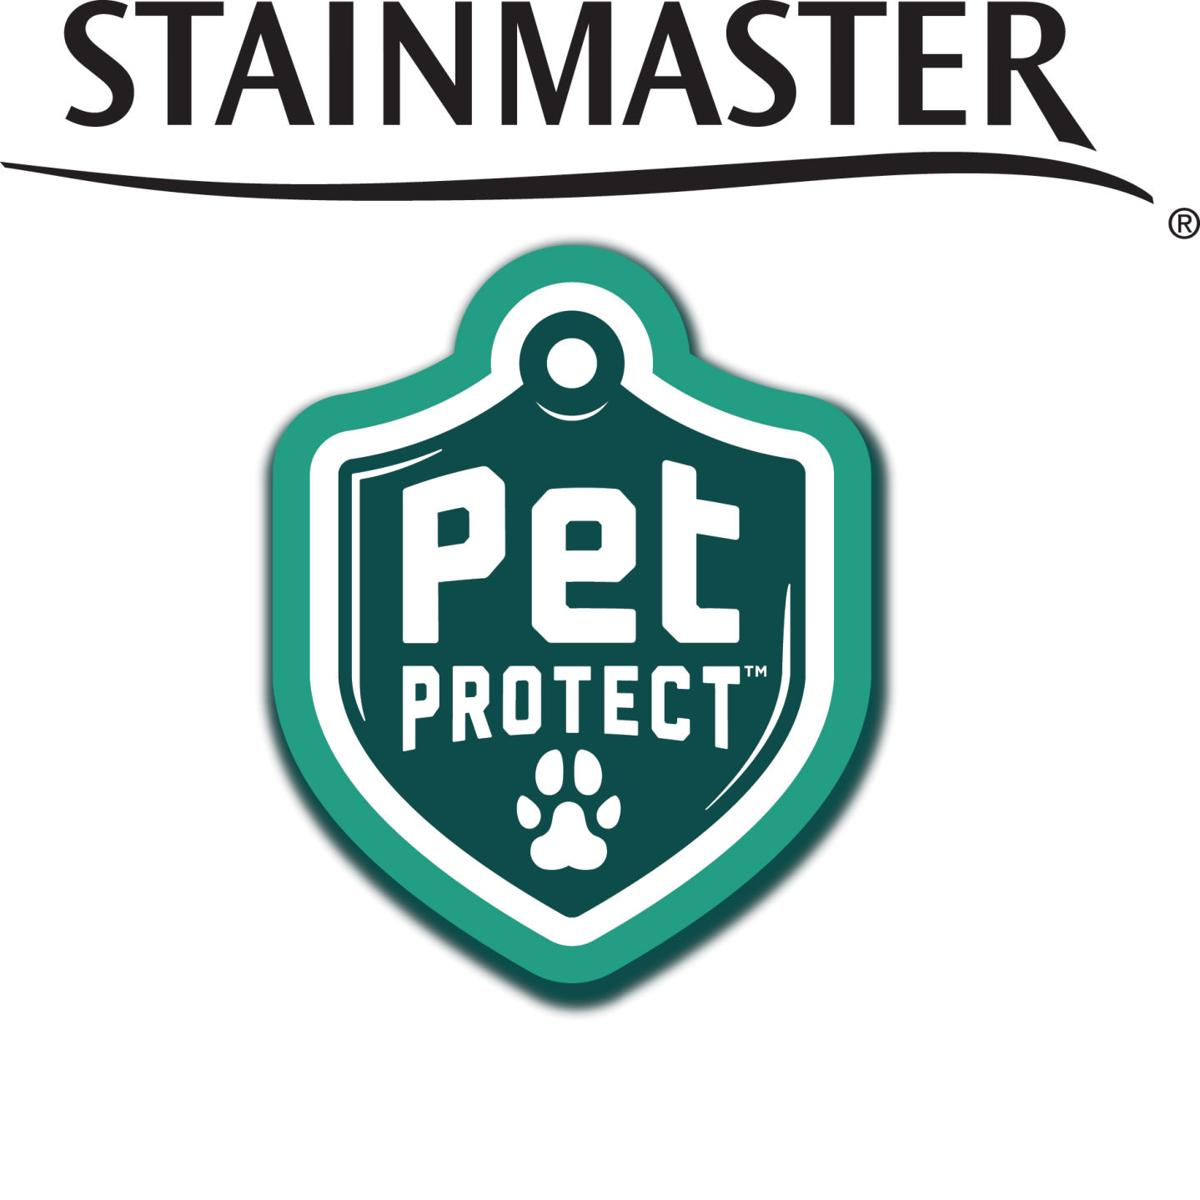 Stainmaster Pet Protection